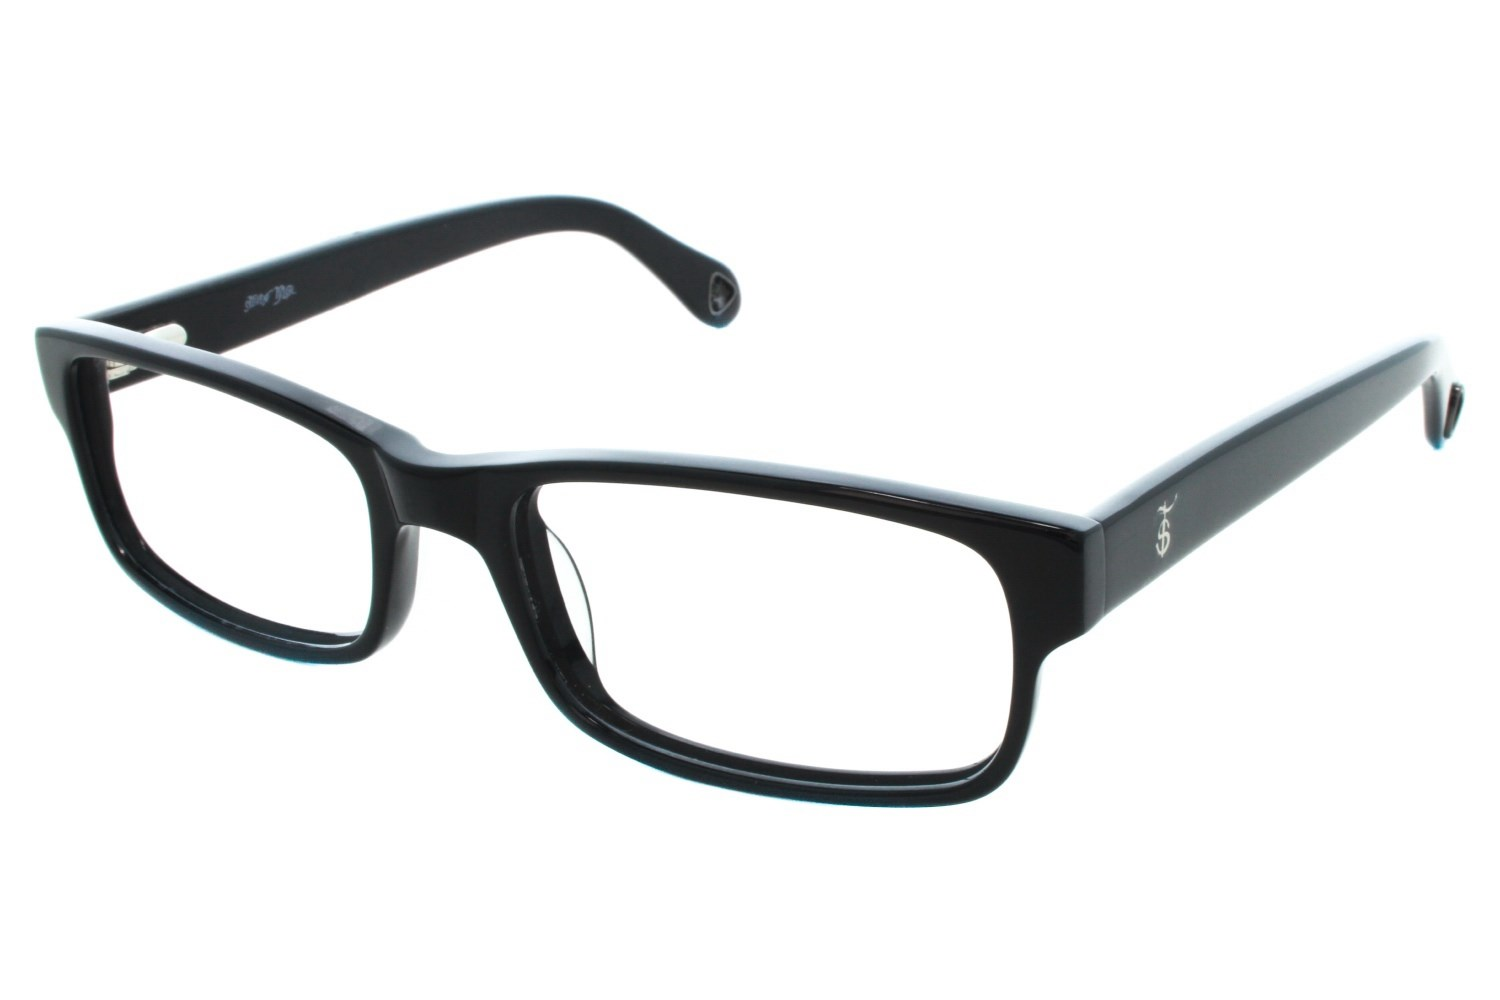 Store Discountglasses Eyewear glasses and contact lenses superstore